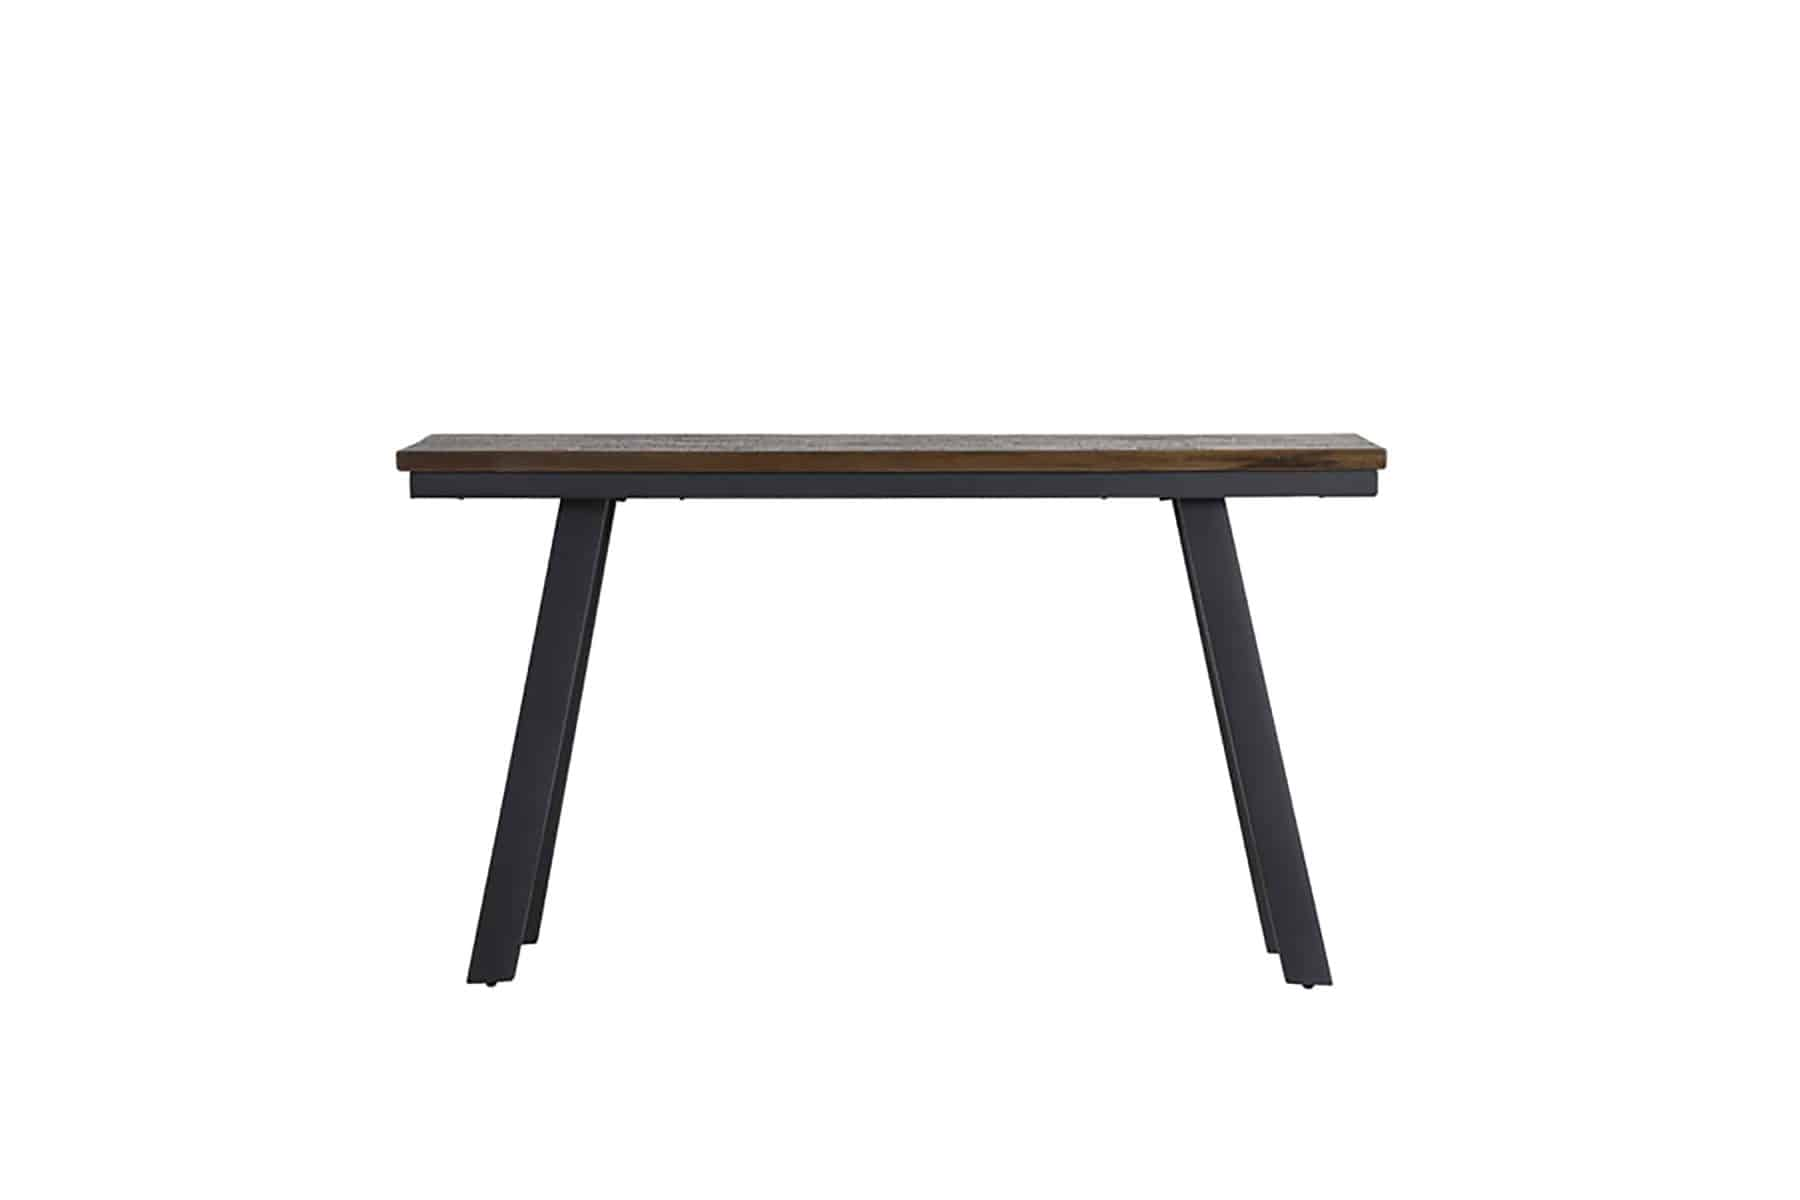 grey wood table with black legs